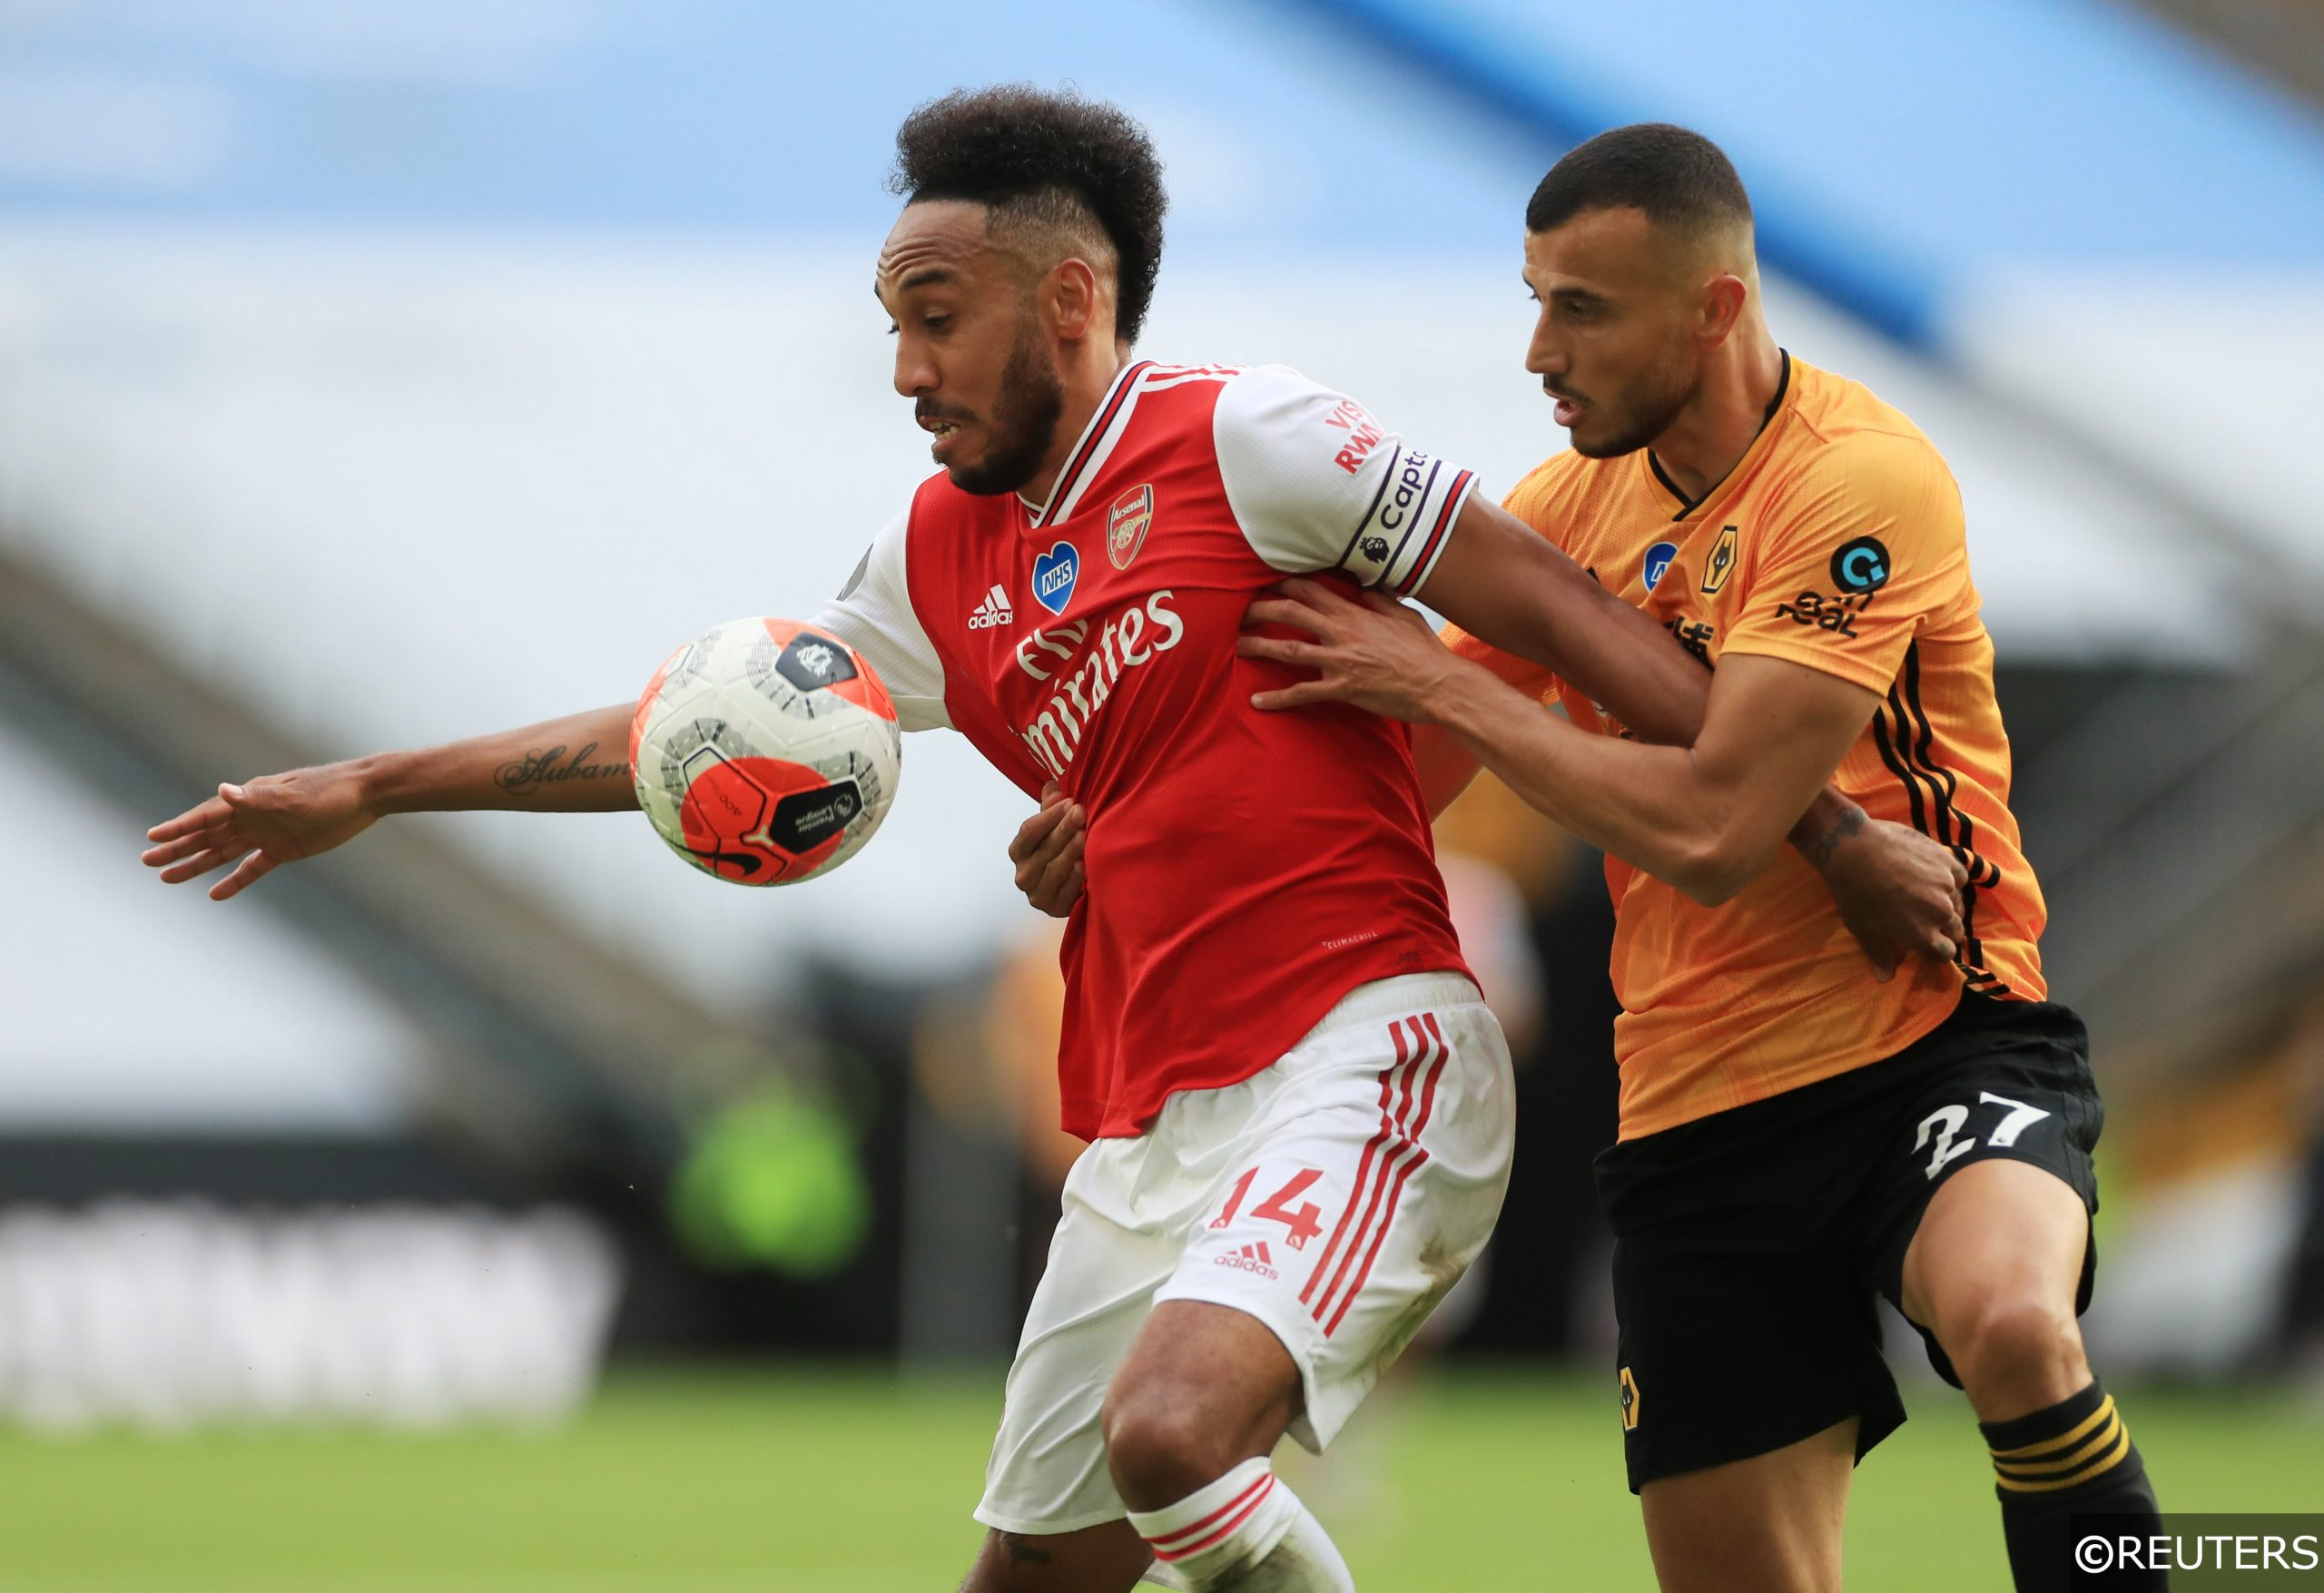 Arsenal Aubameyang and Wolves Saiss